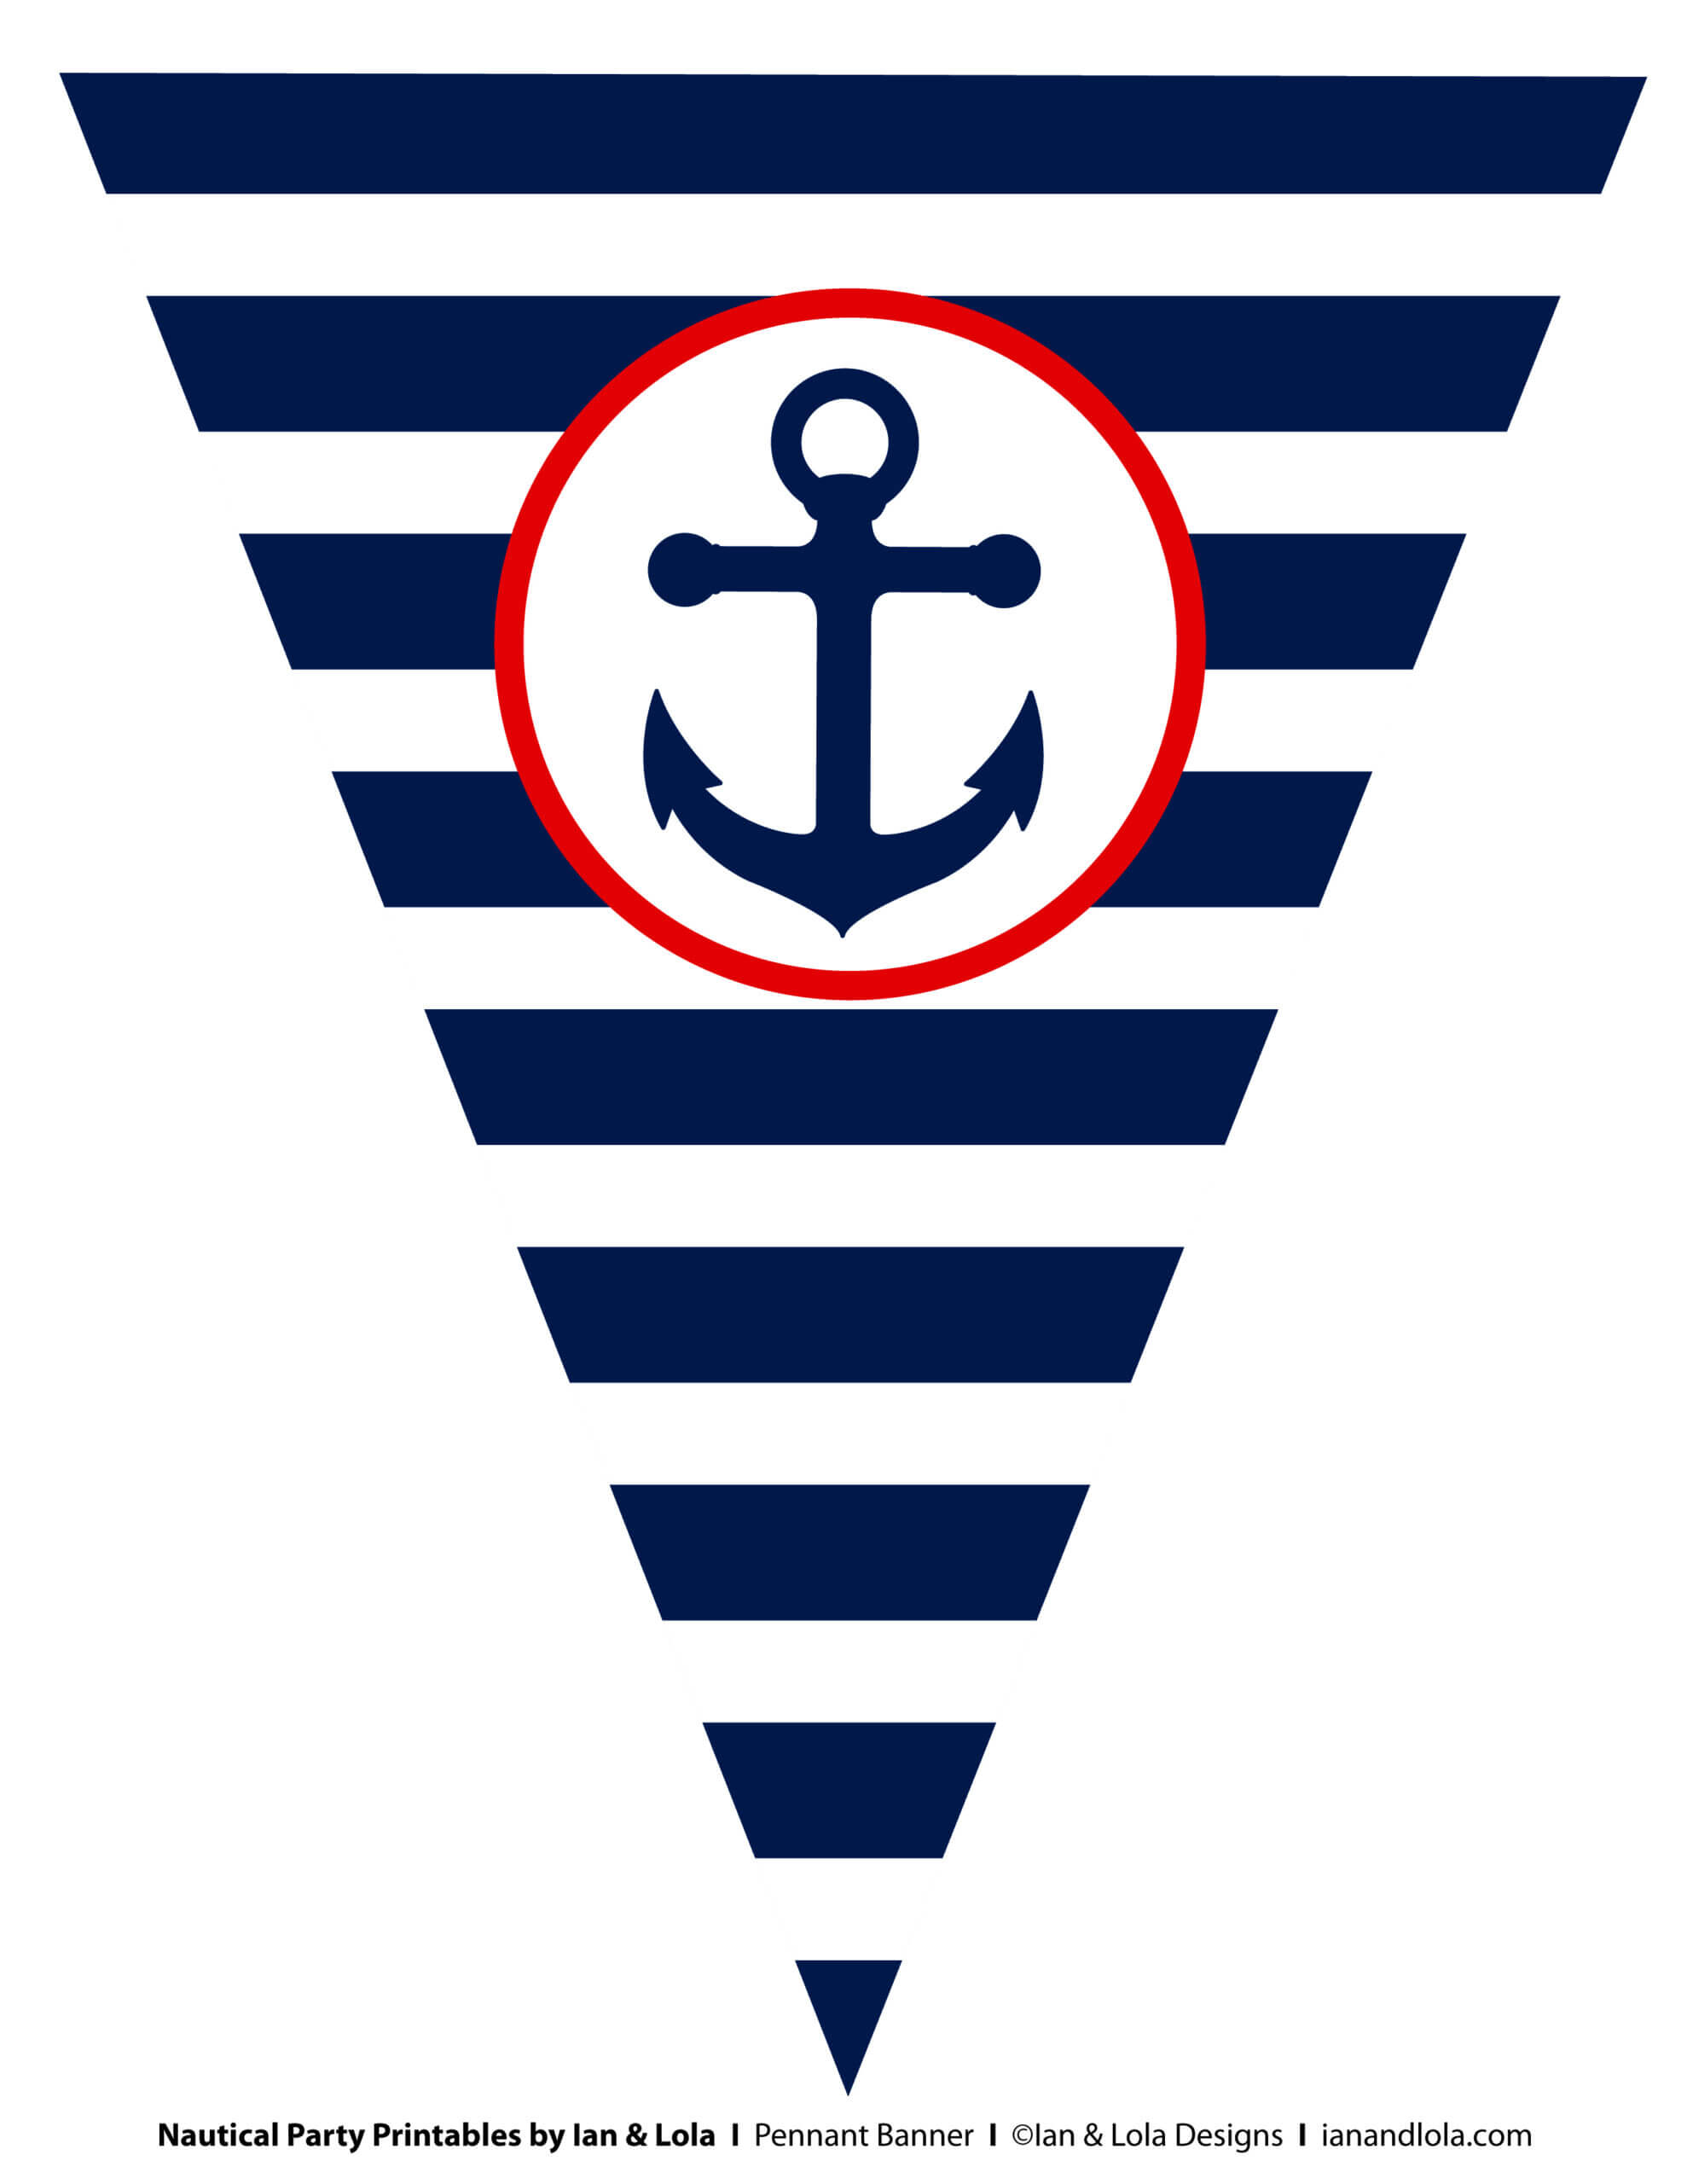 Free Nautical Party Printables From Ian & Lola Designs Throughout Nautical Banner Template